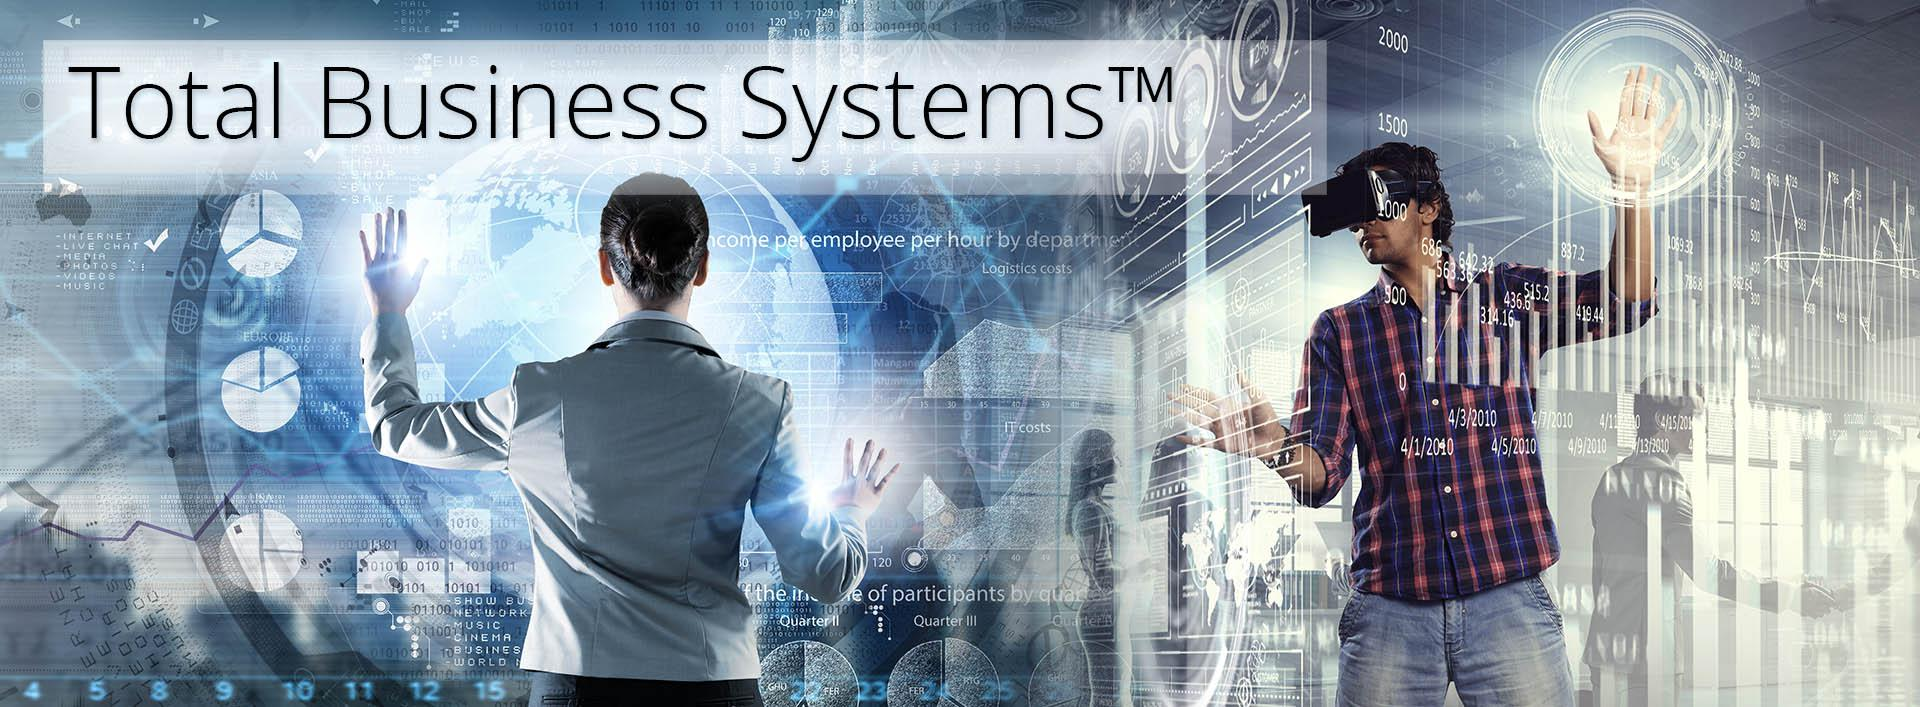 Total Business Systems